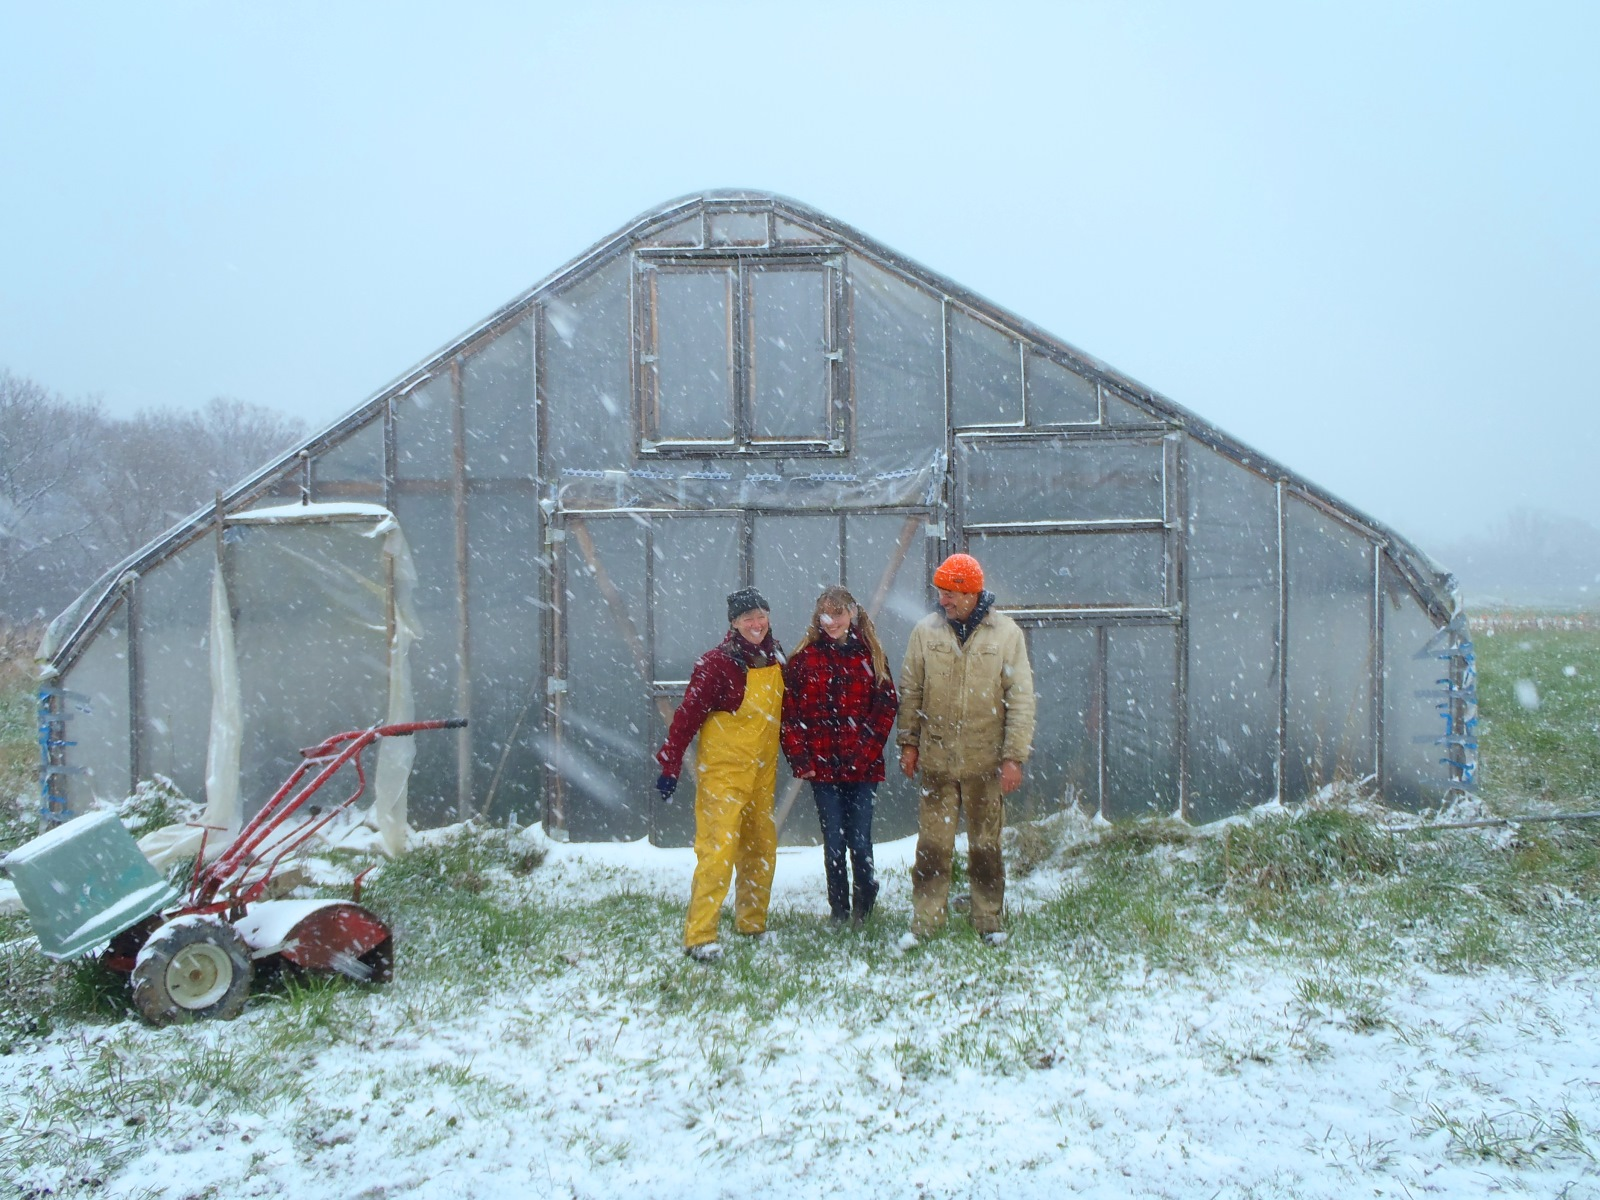 Doug and Mary Newman with their daughter outside their seasonal high tunnel